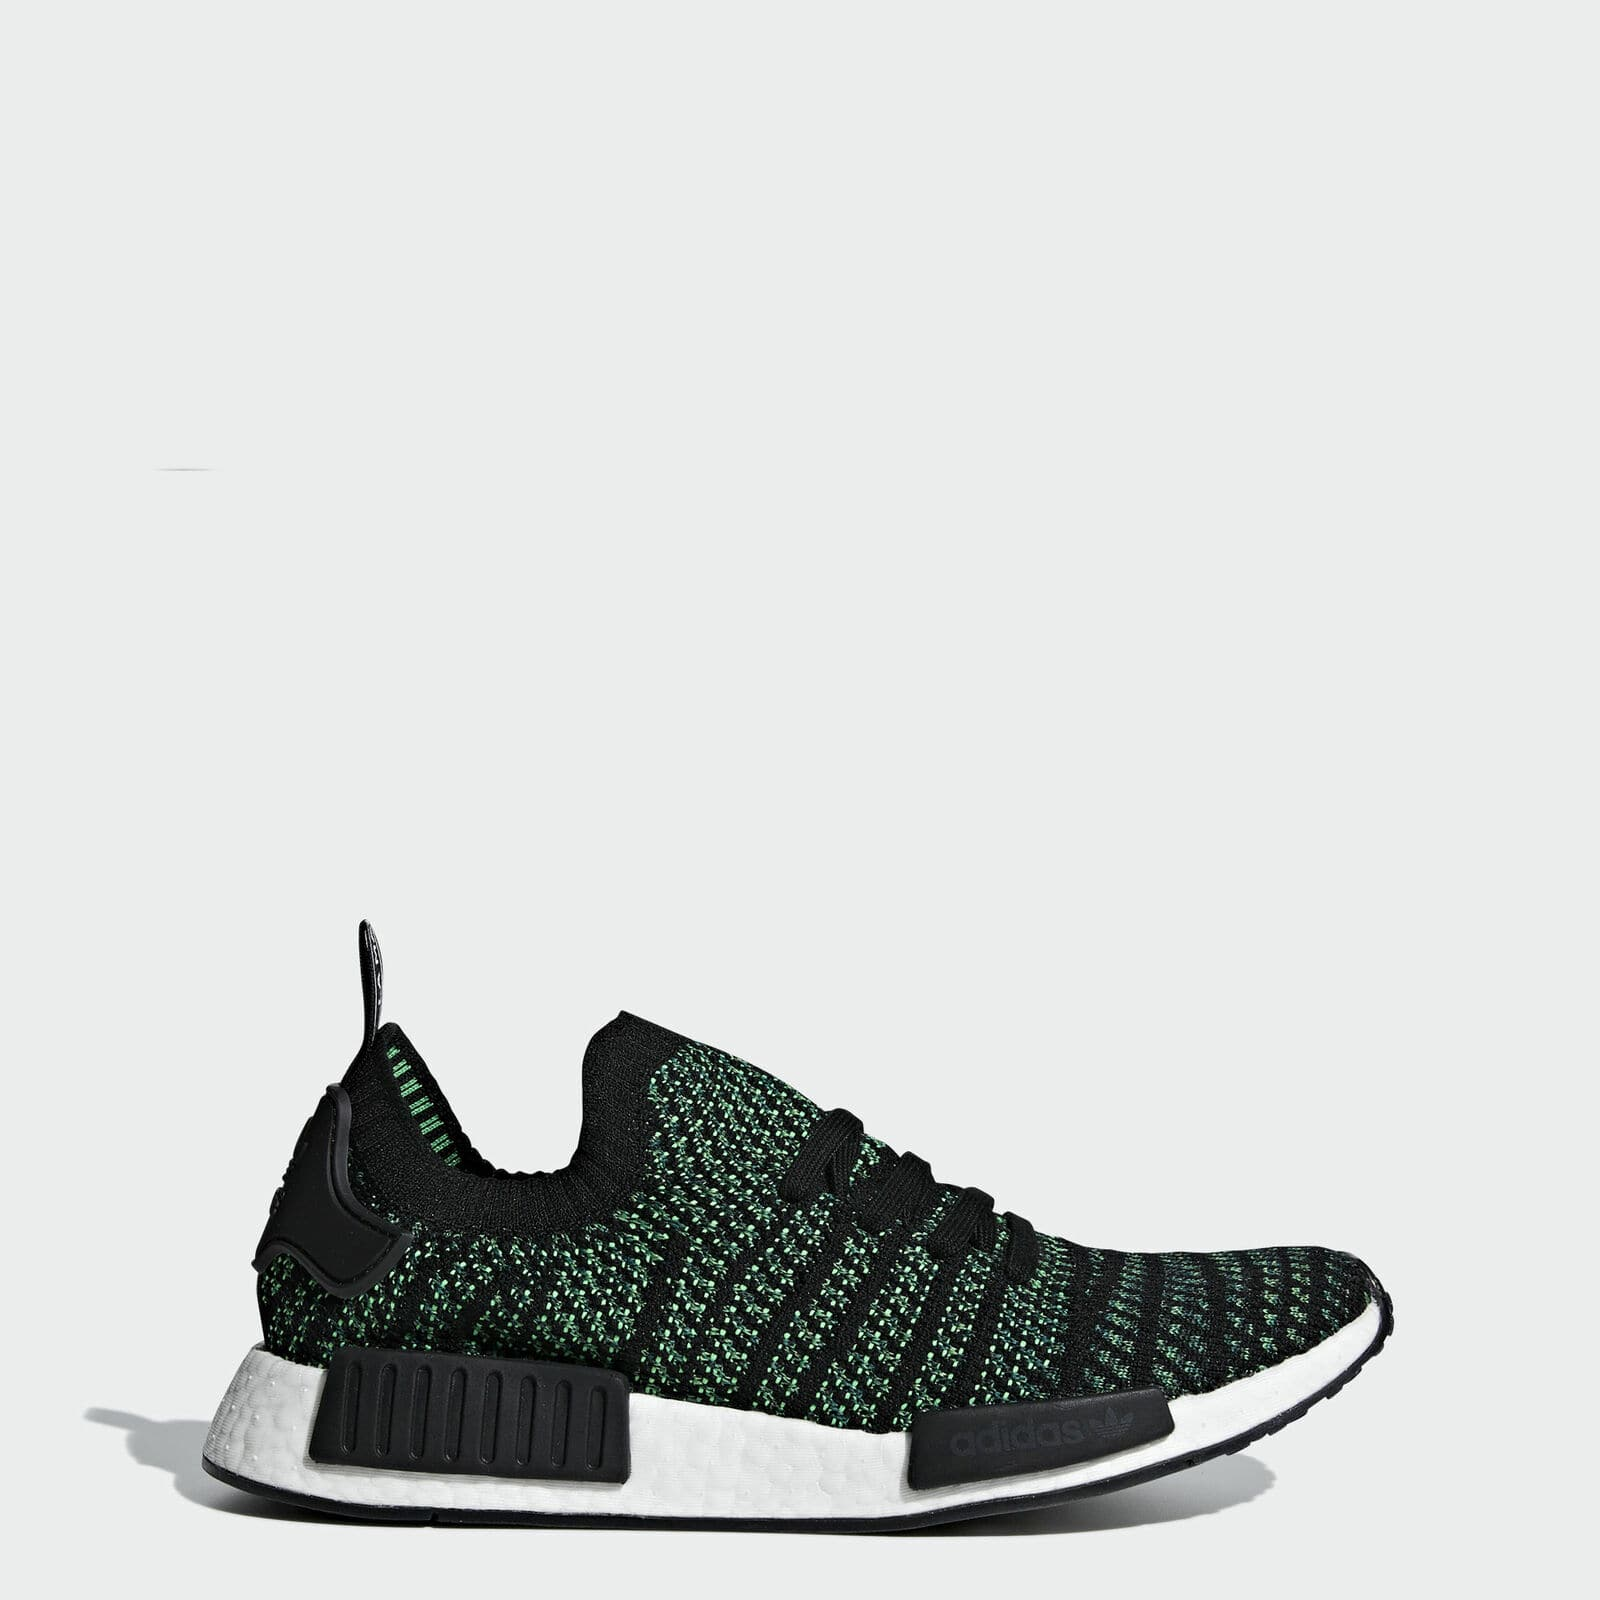 size 40 55c36 c954a adidas Men s Shoes  Alphabounce Beyond Team  33.75, NMD R1 STLT Primeknit  Shoes